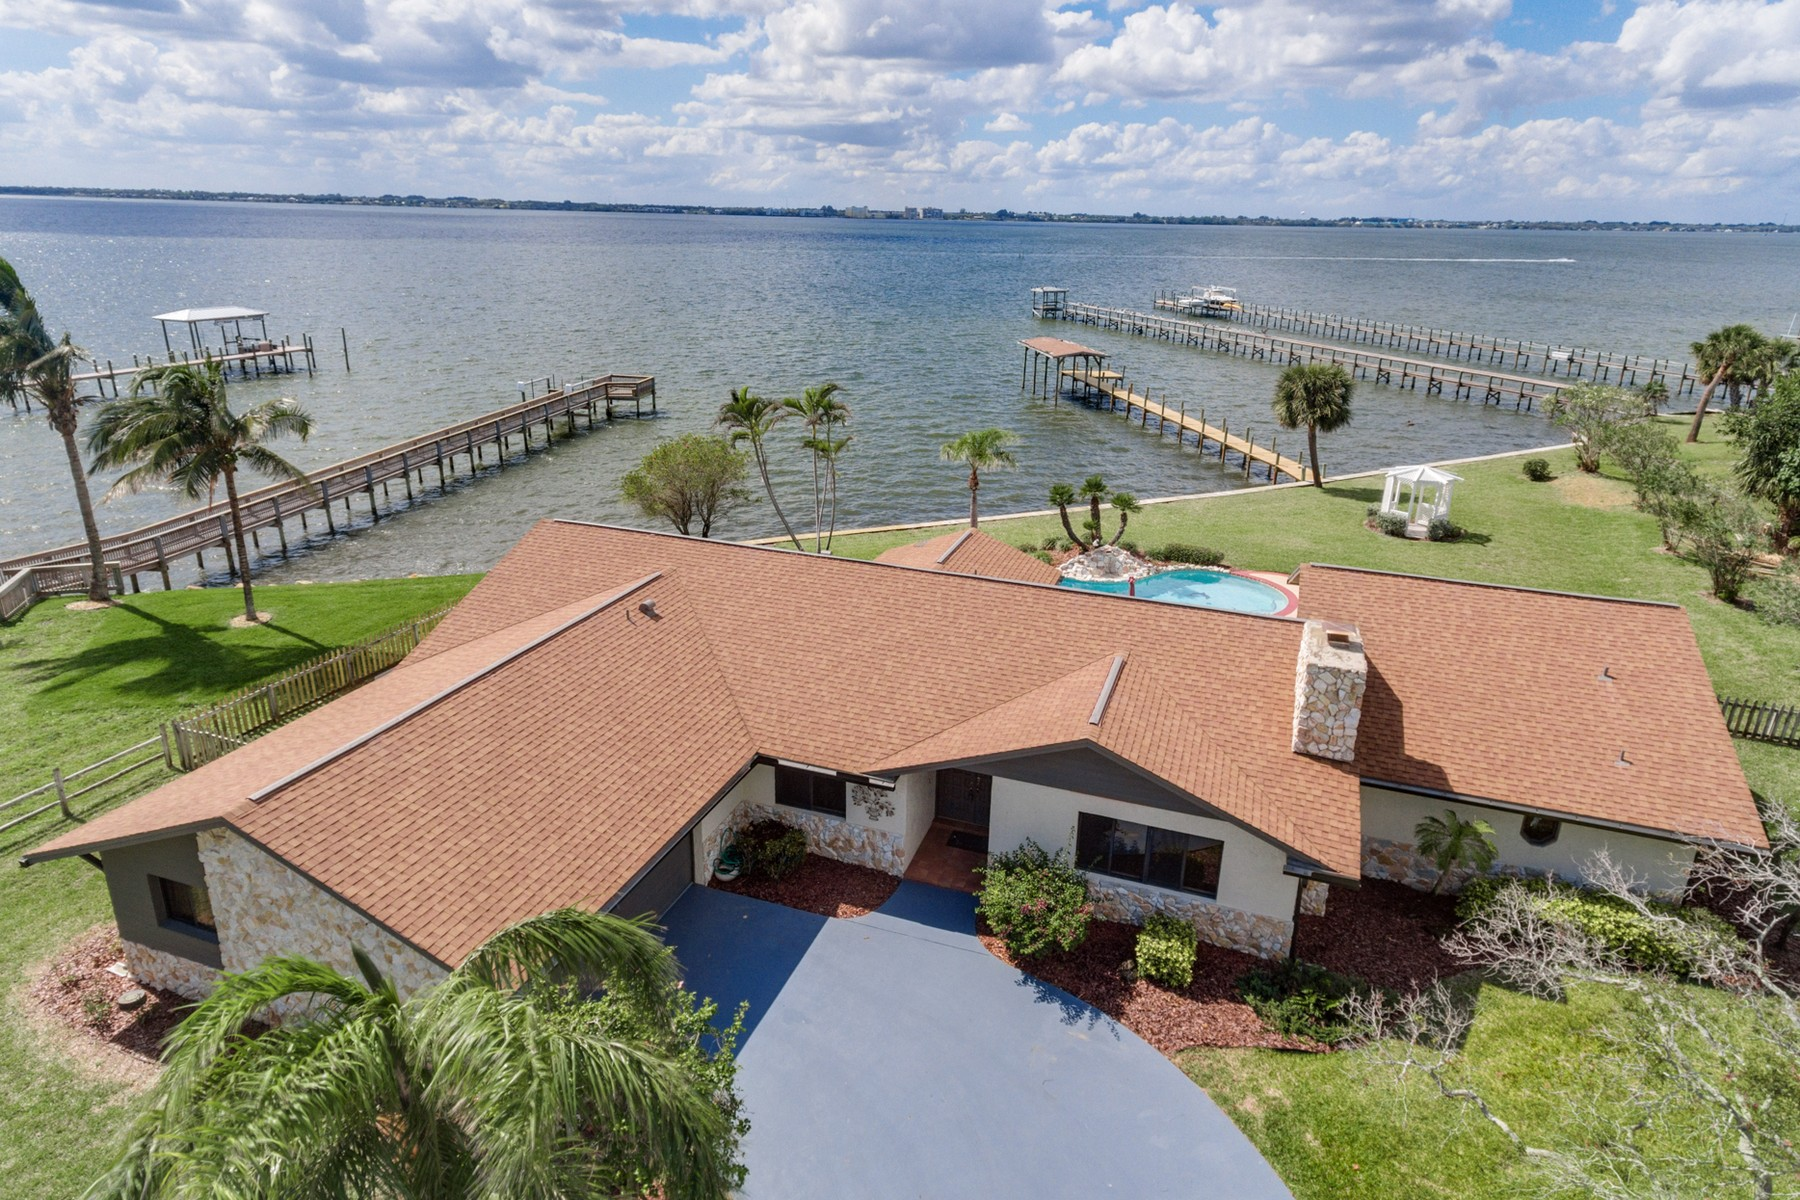 Single Family Home for Sale at 200 Mar-Len Drive Melbourne Beach, Florida 32951 United States